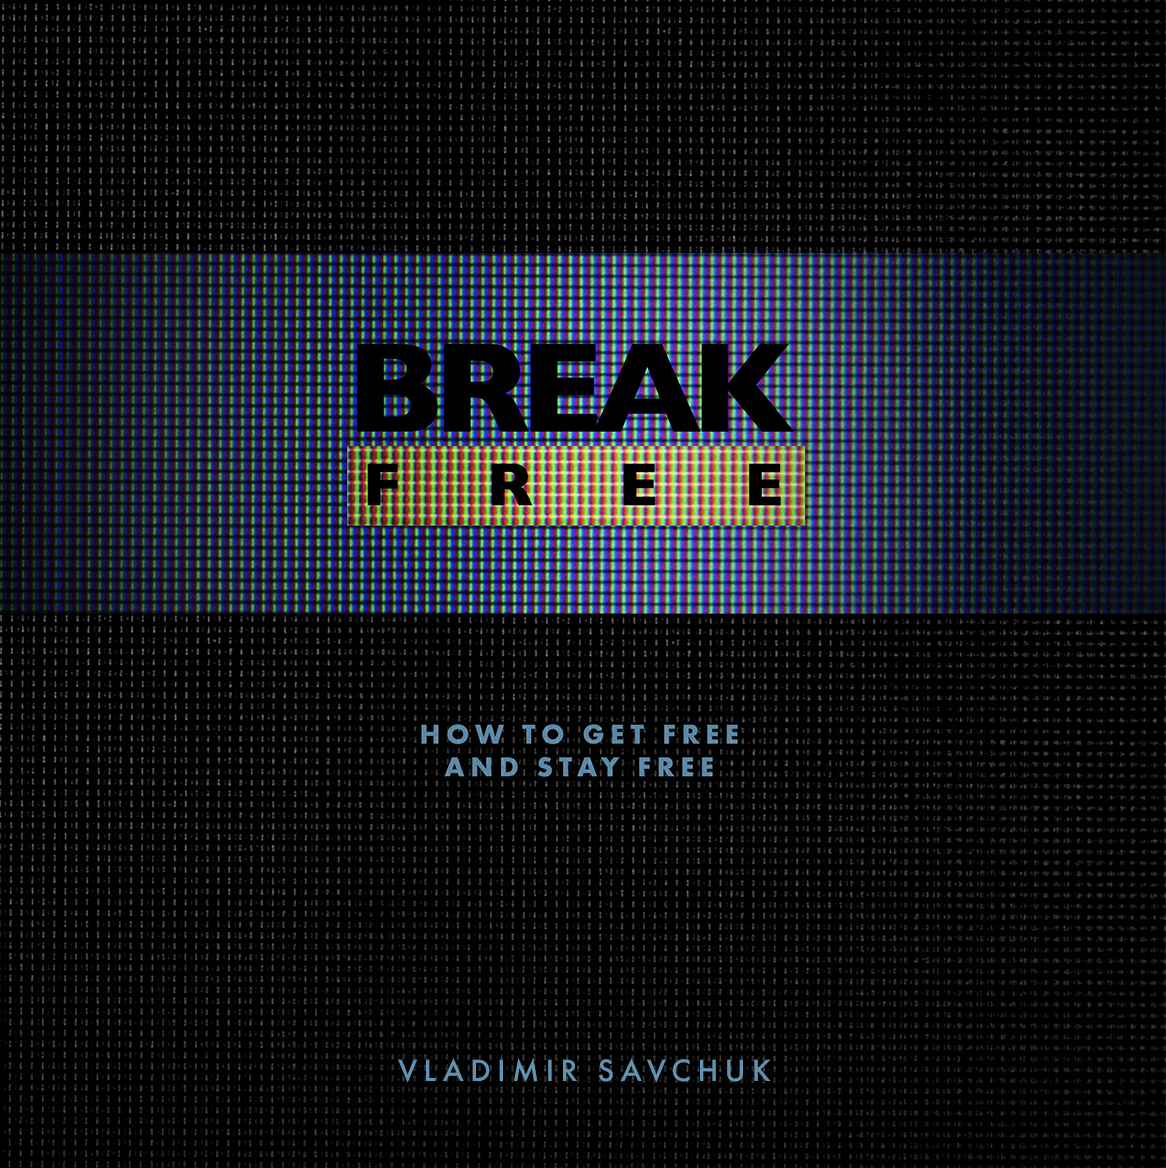 https://vladimirsavchuk.com/resources/break-free/